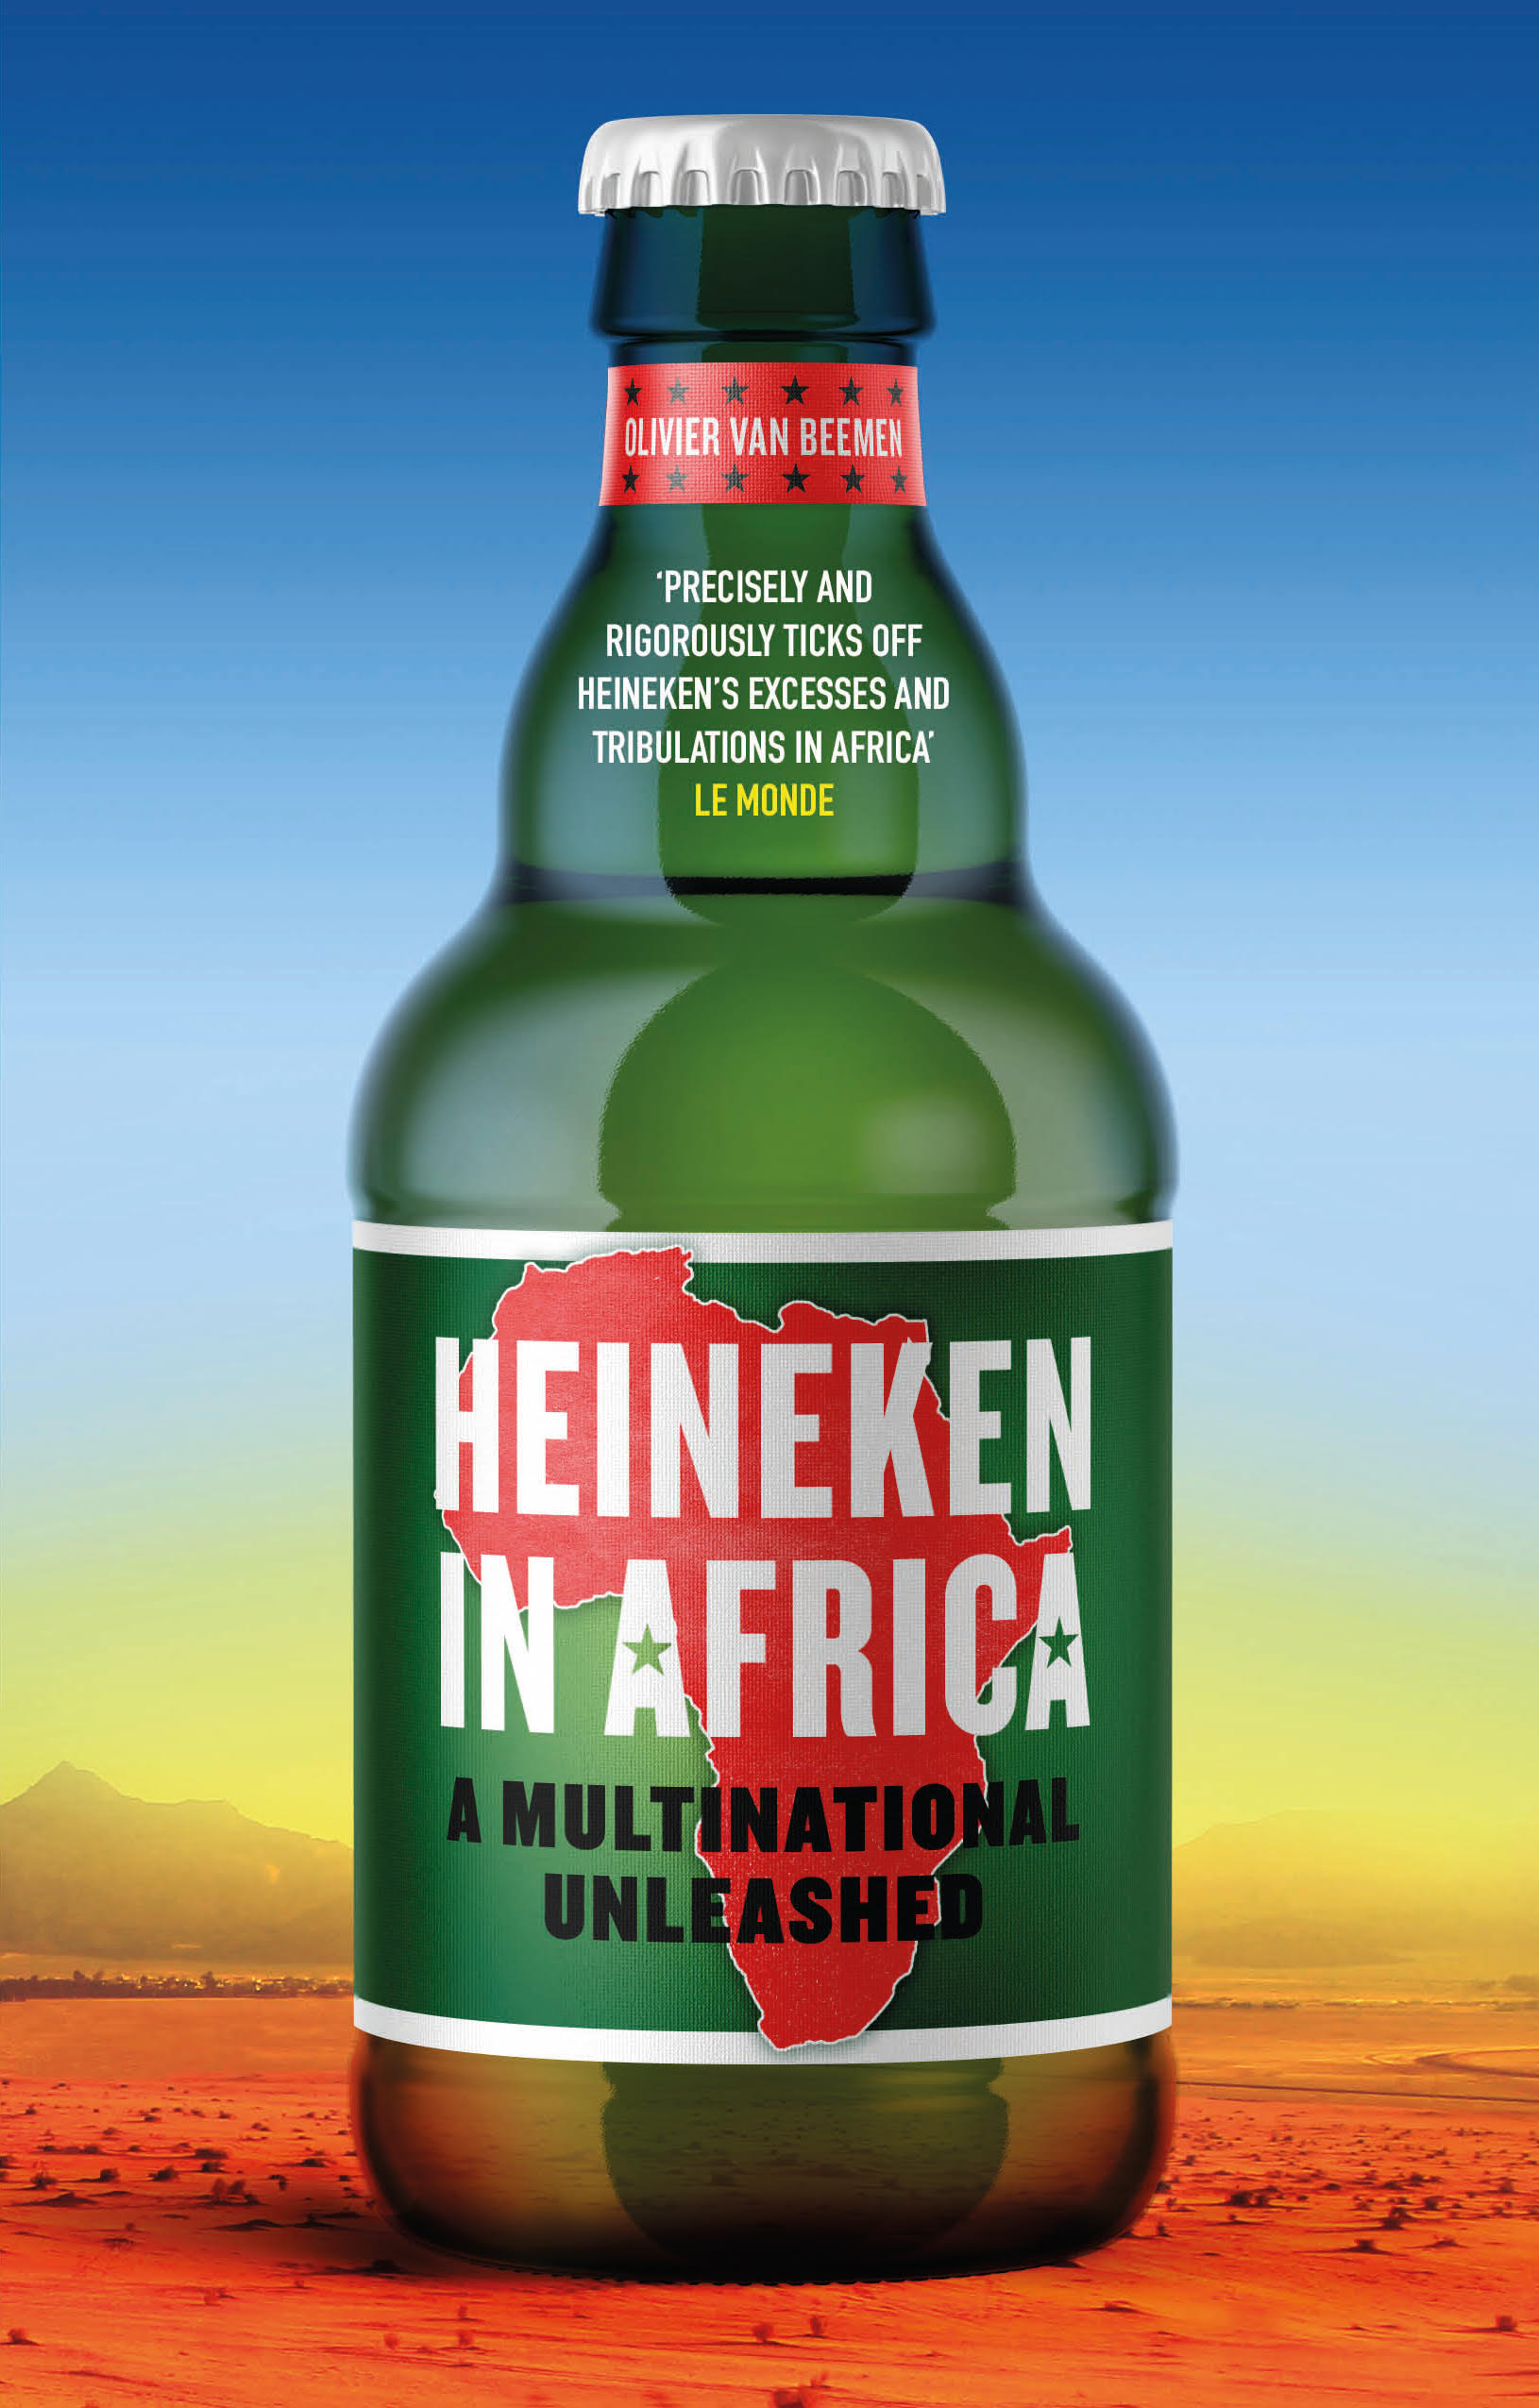 Cover Heineken in Africa for social media